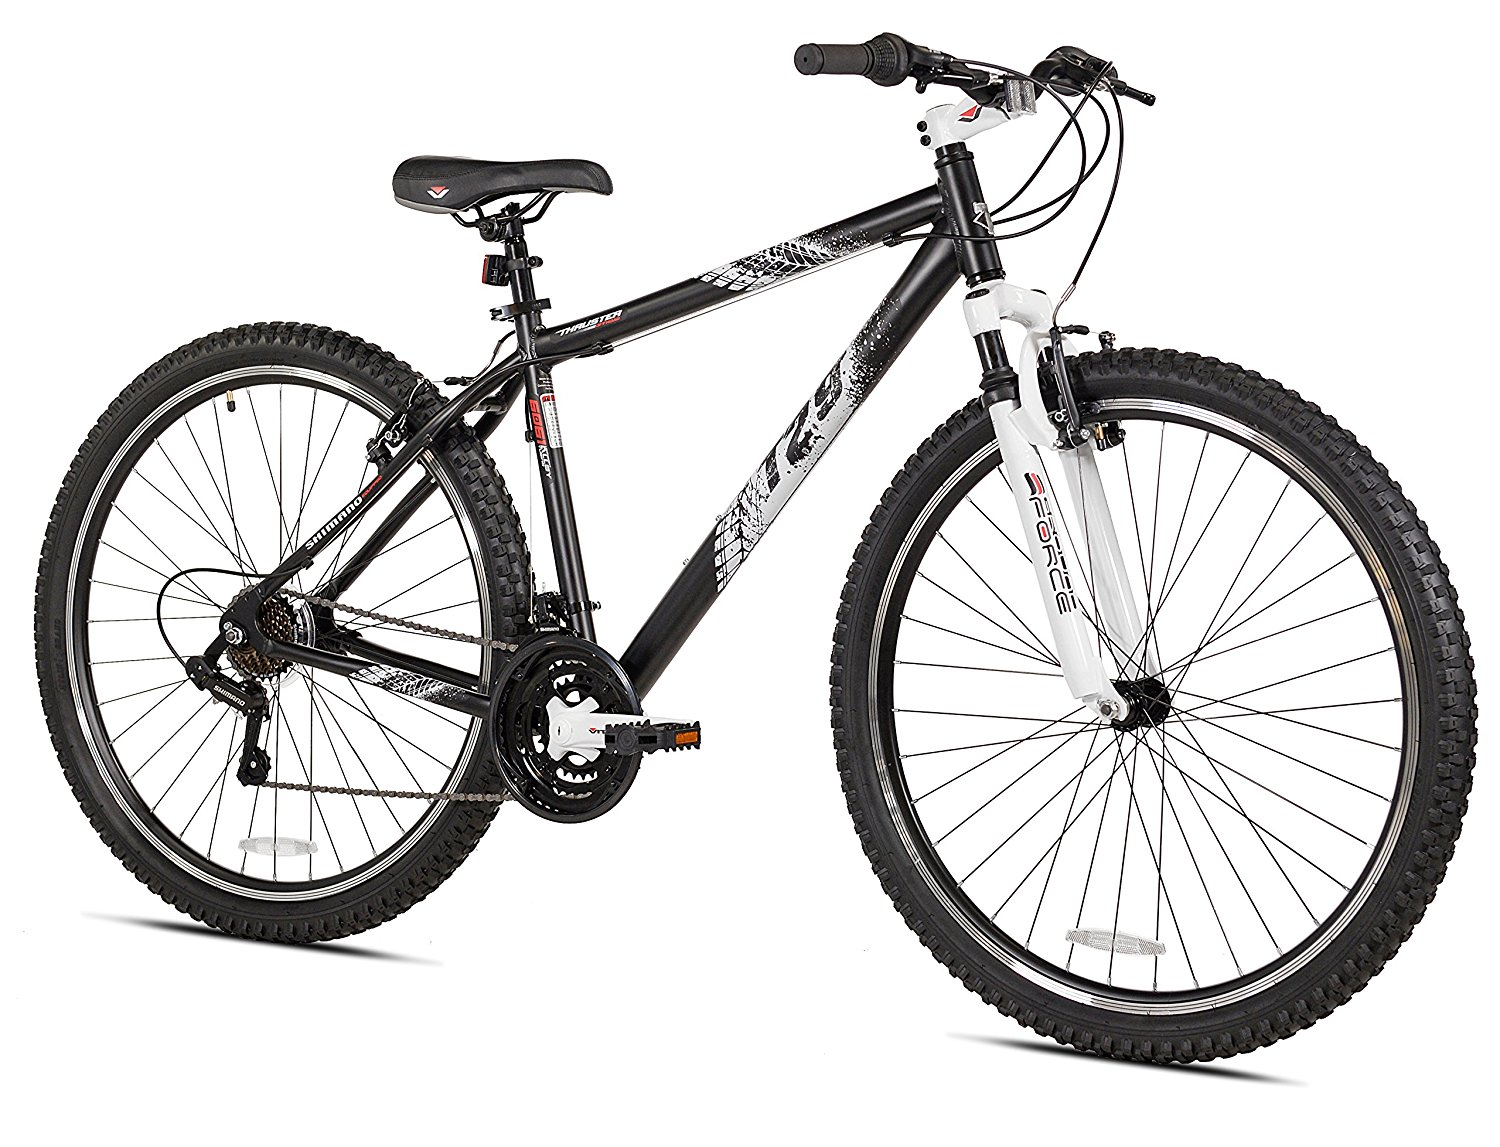 Best Specialized Mountain Bikes Reviews: Our Picks